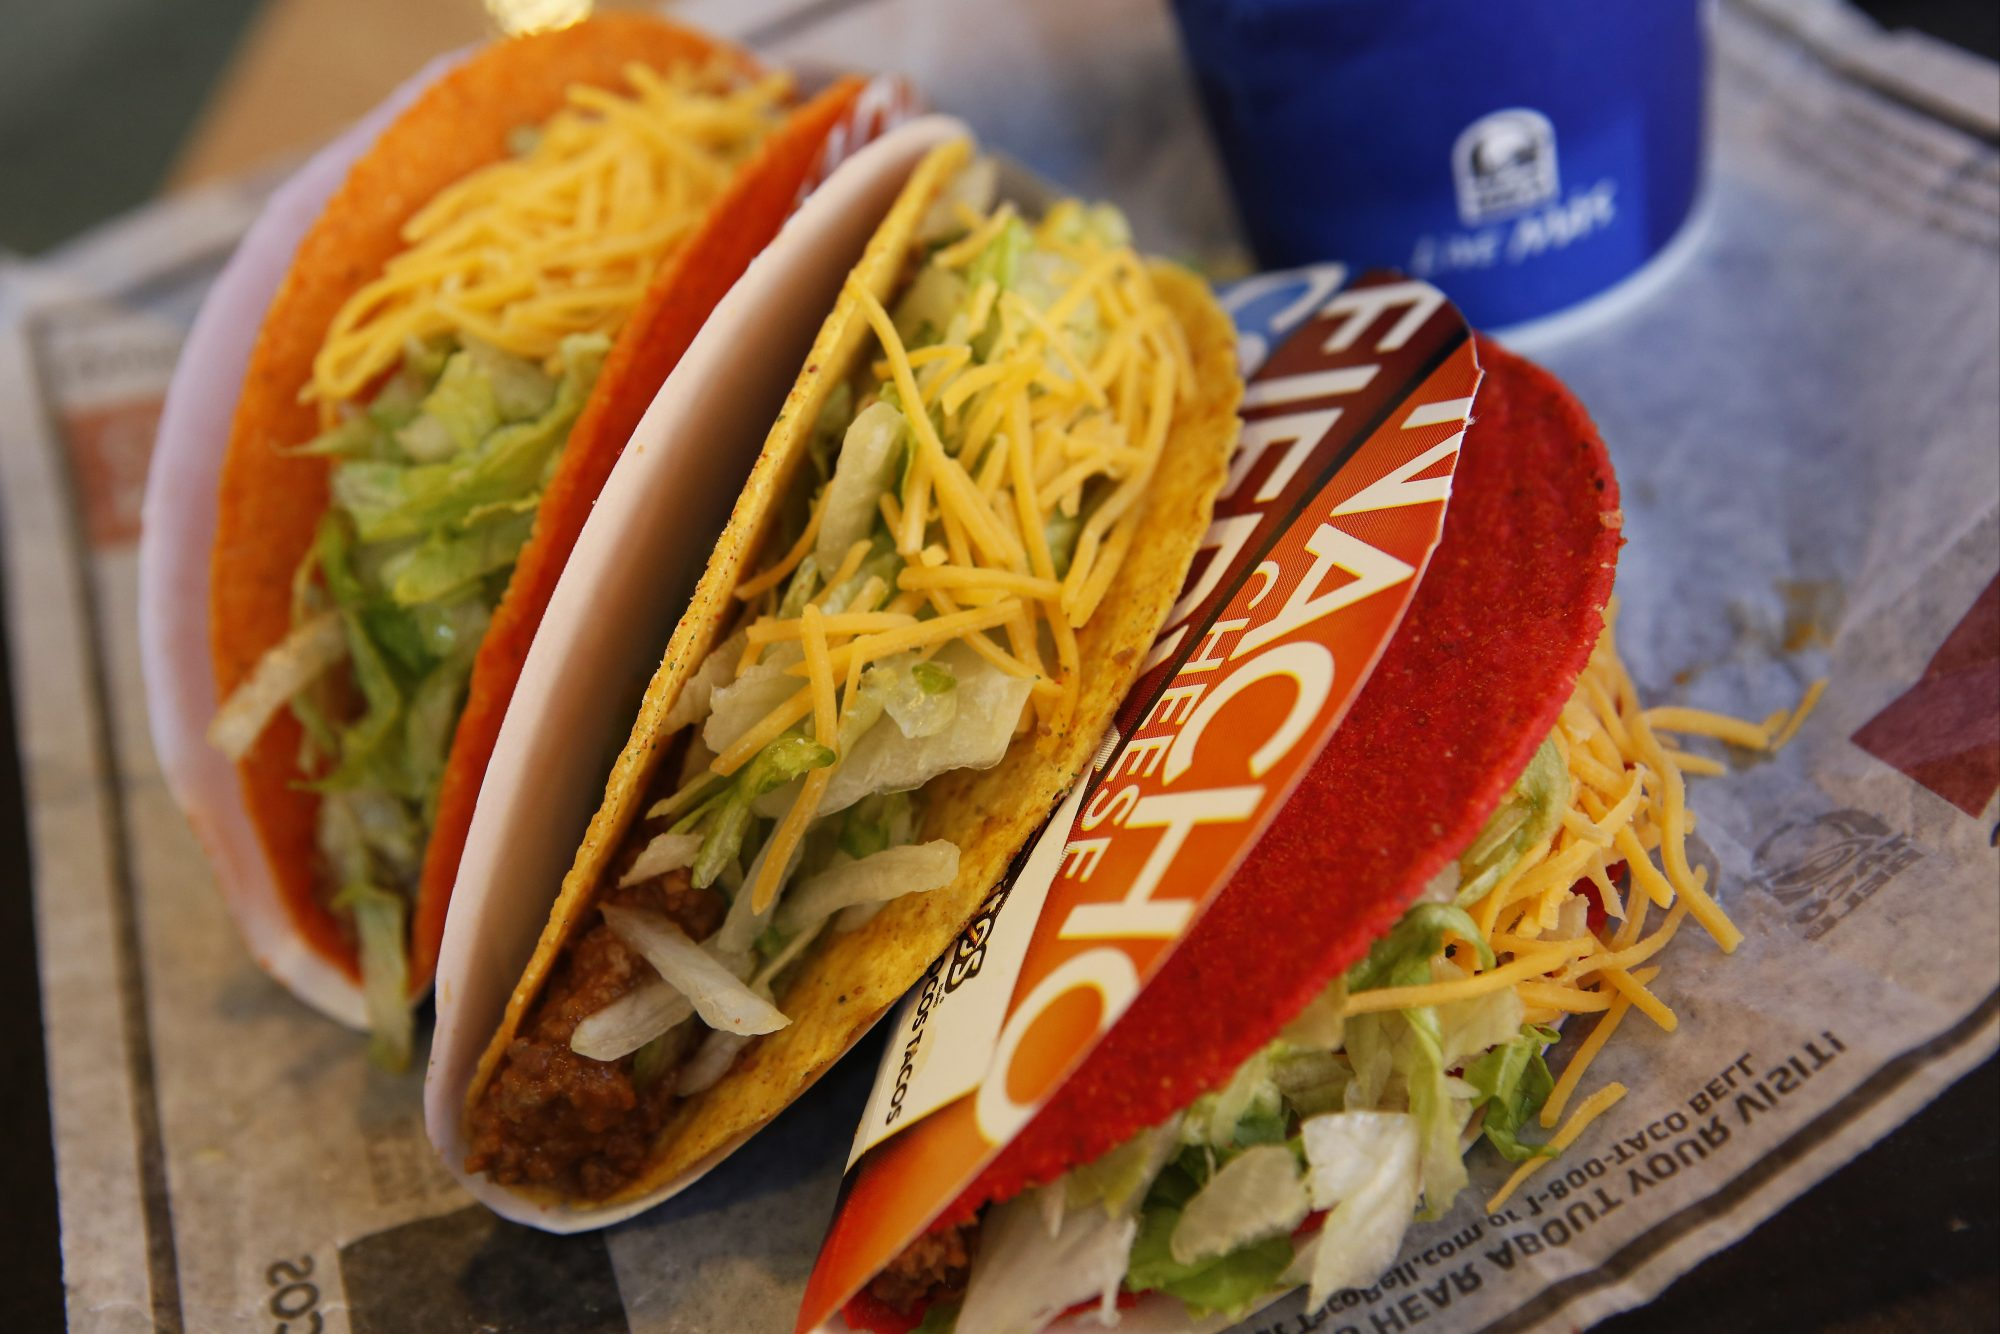 Taco Bell And Pizza Hut Restaurants Ahead Of Yum! Brands Earnings Figures